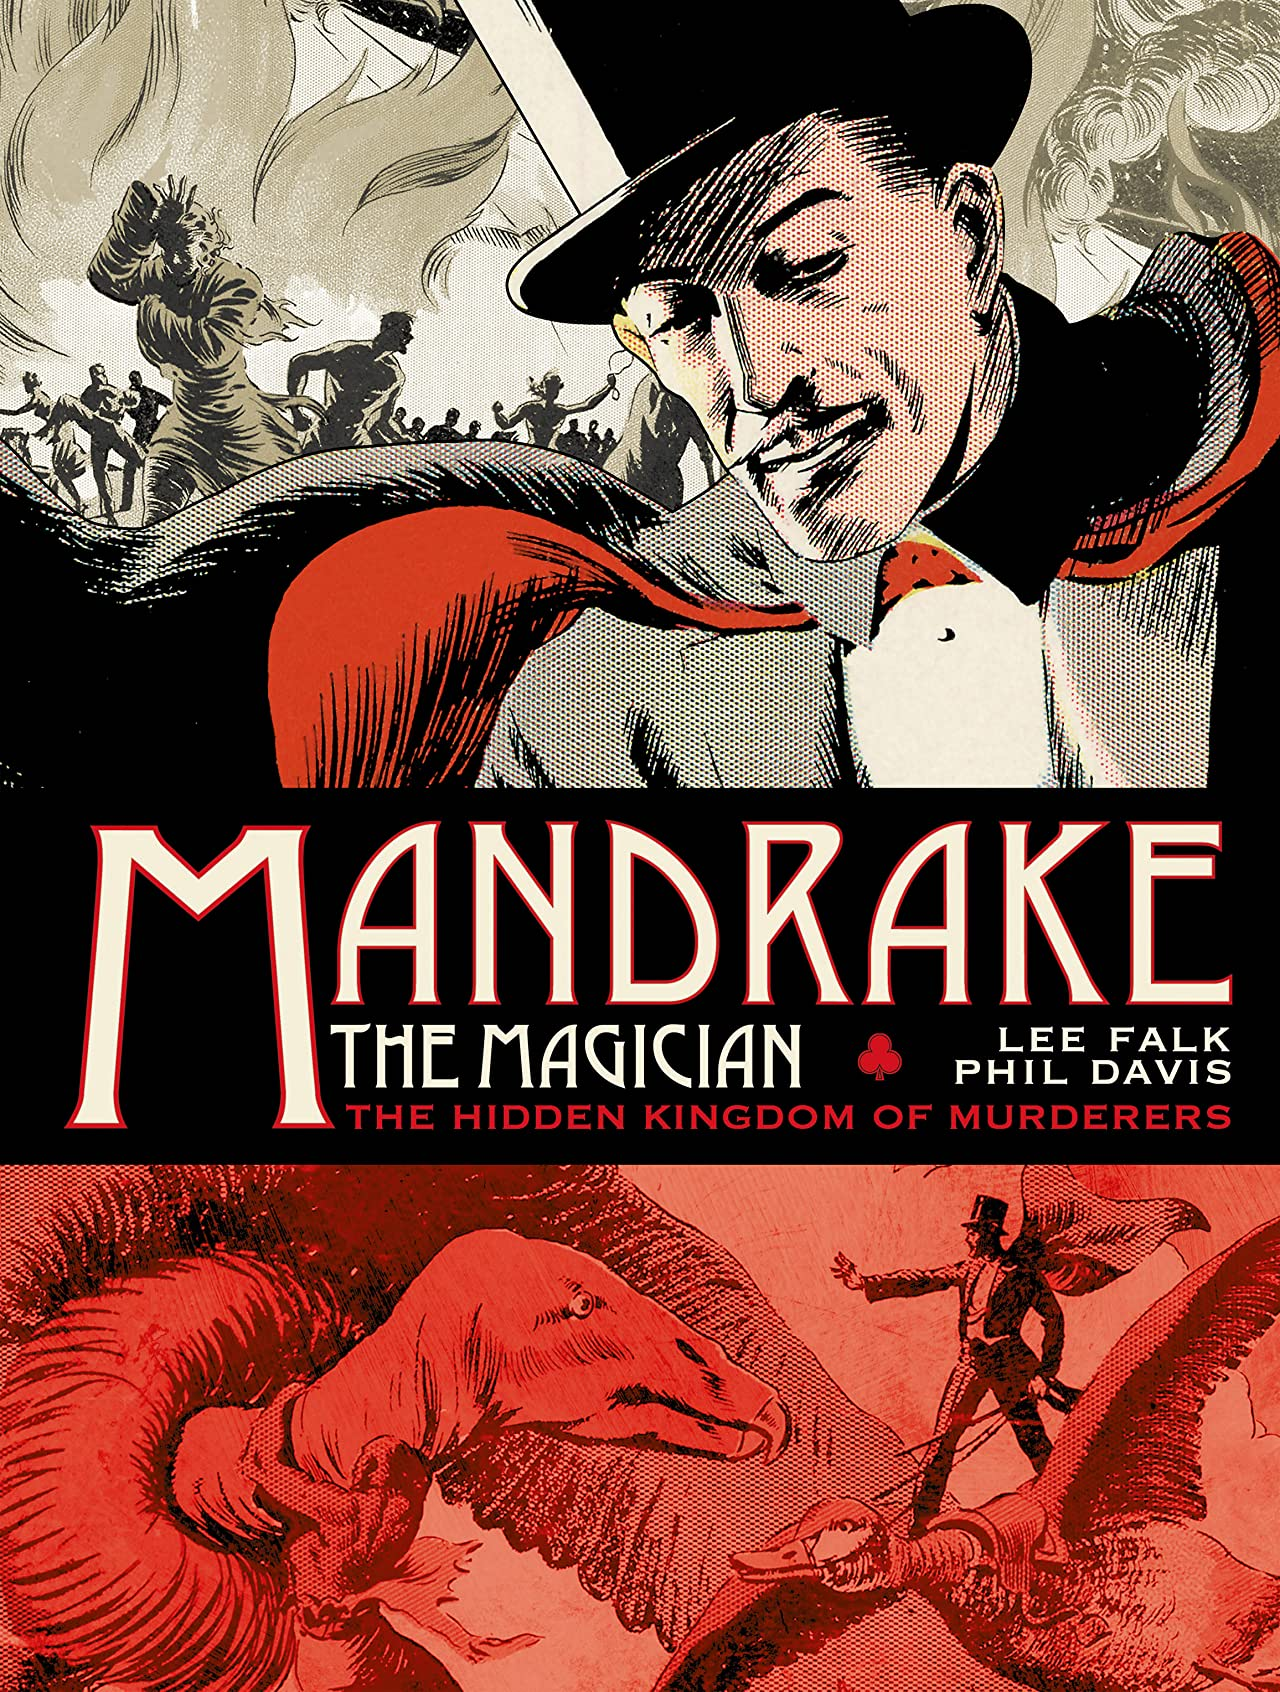 Mandrake The Magician: The Sundays Vol. 1: The Hidden Kingdom of Murderers